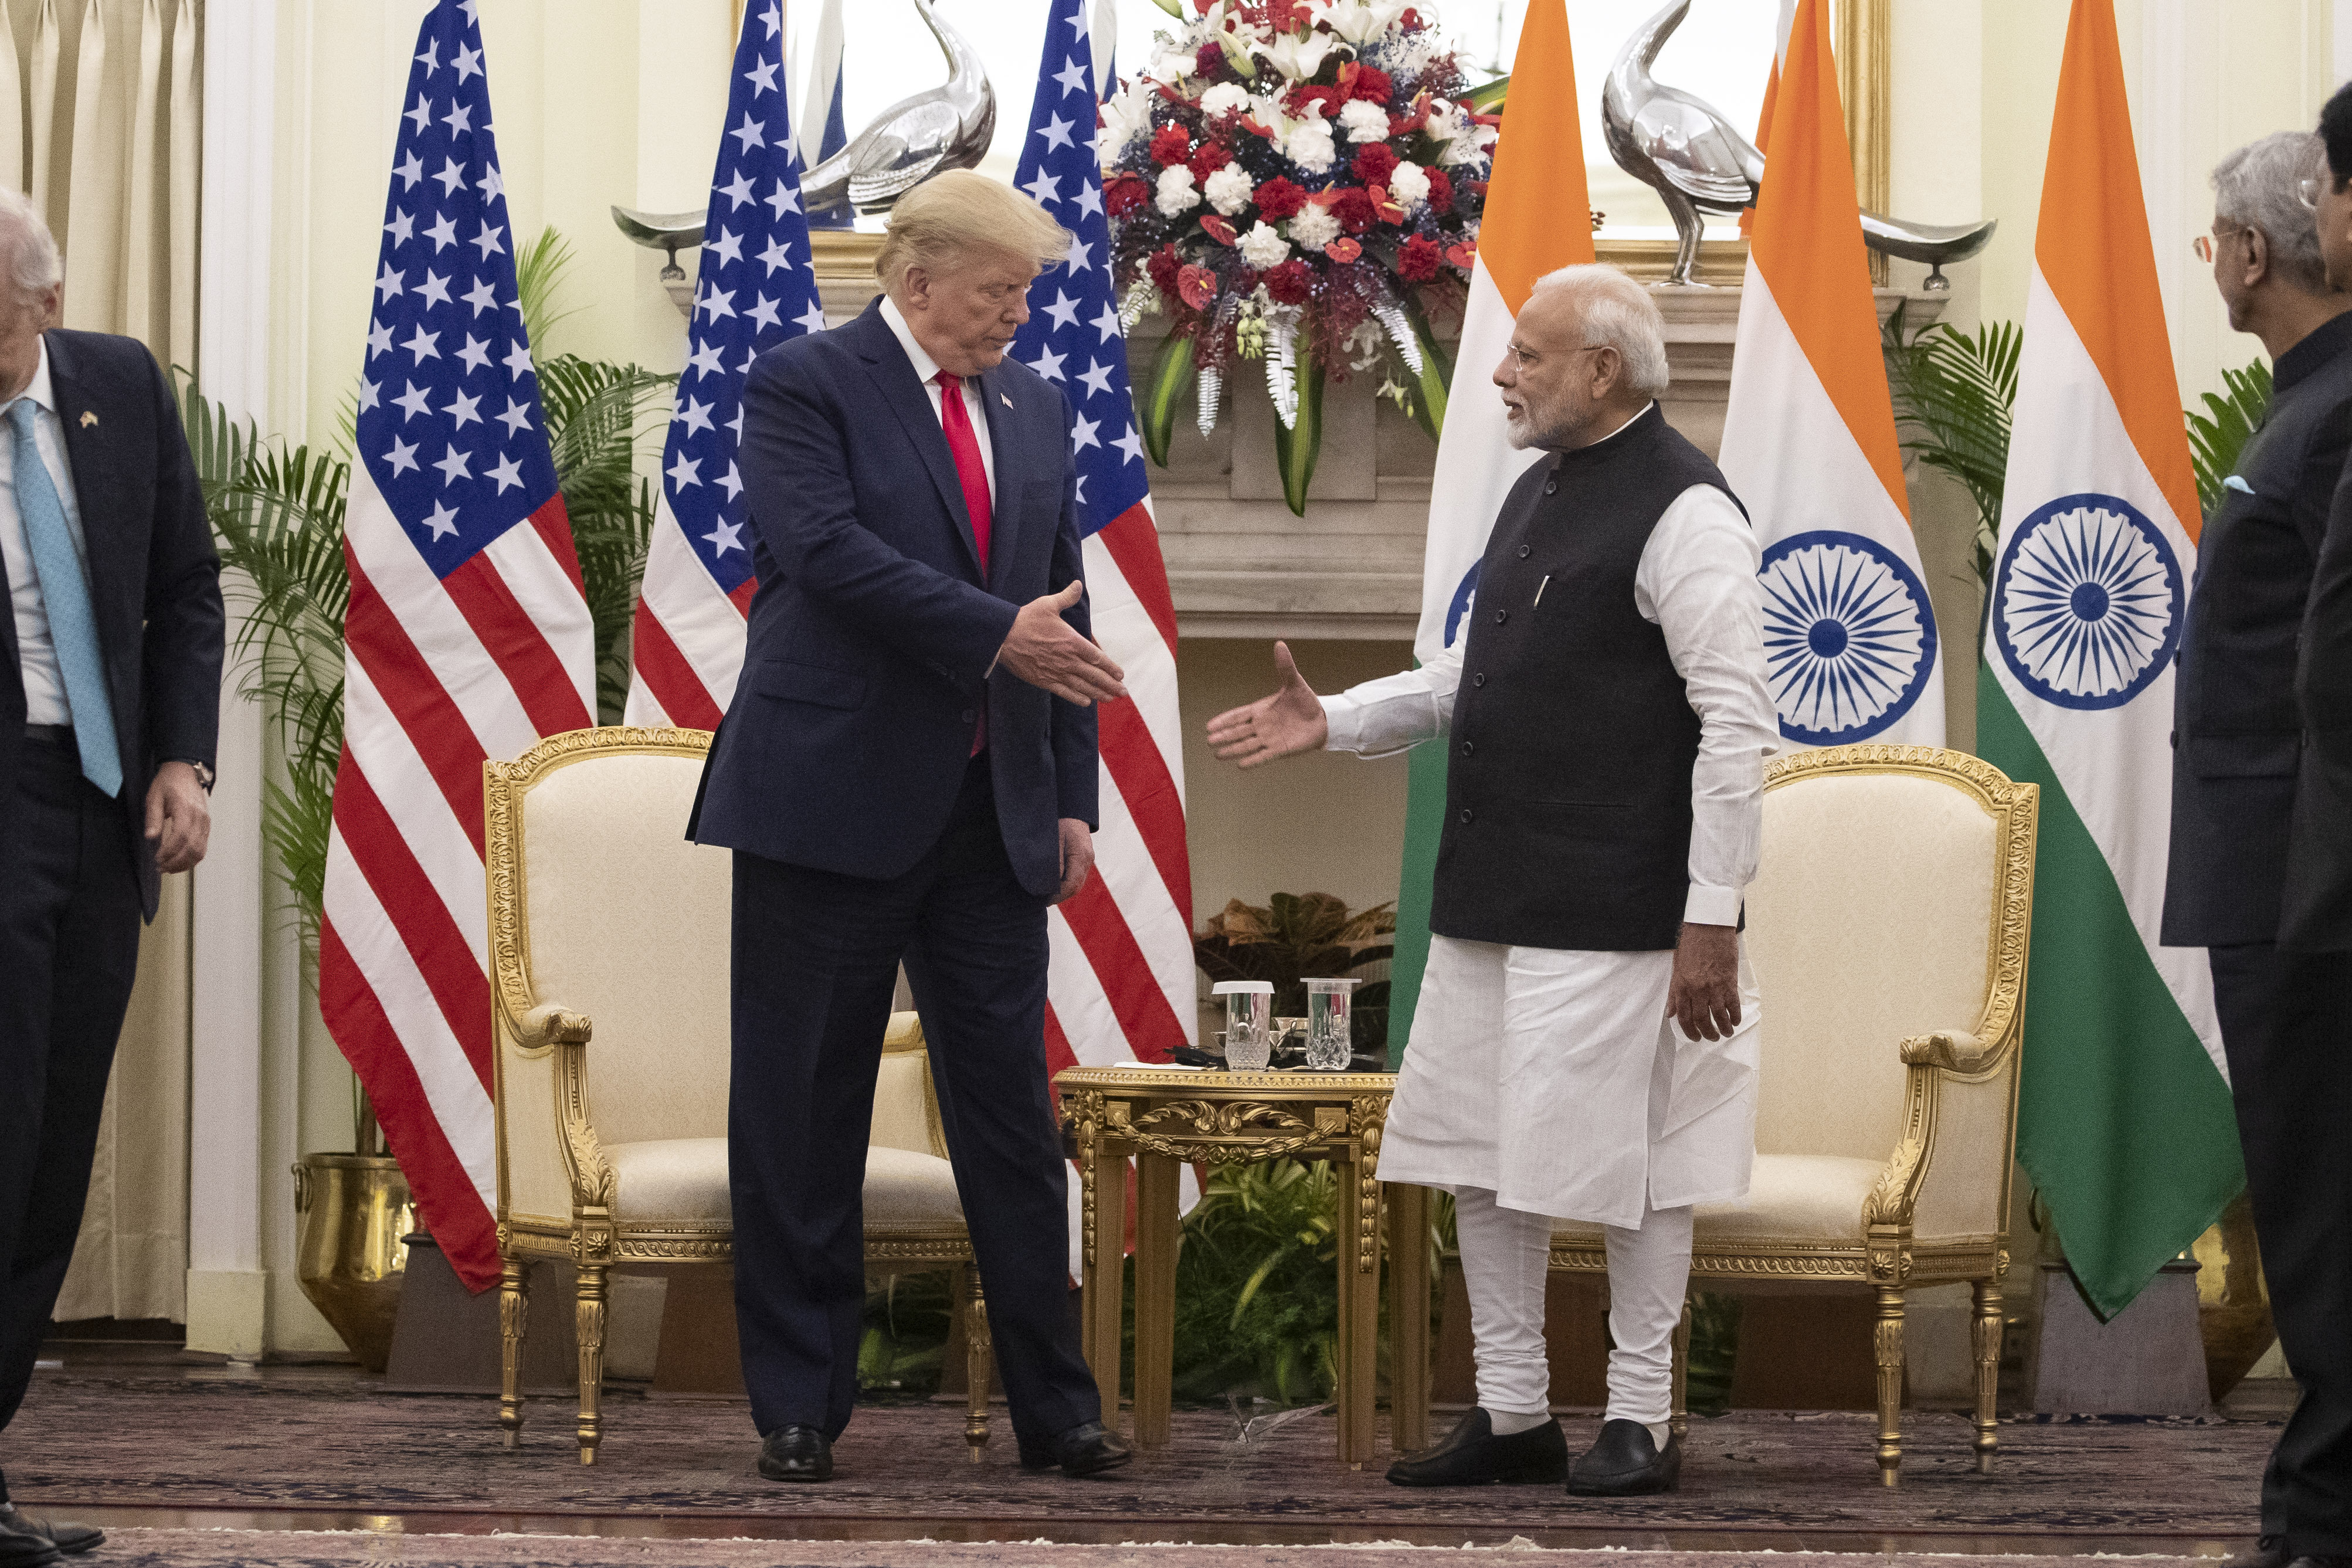 Donald Trump and Narendra Modi shake hands before their meeting at Hyderabad House on Tuesday. In July, Trump had said Modi had asked him to mediate on Kashmir.